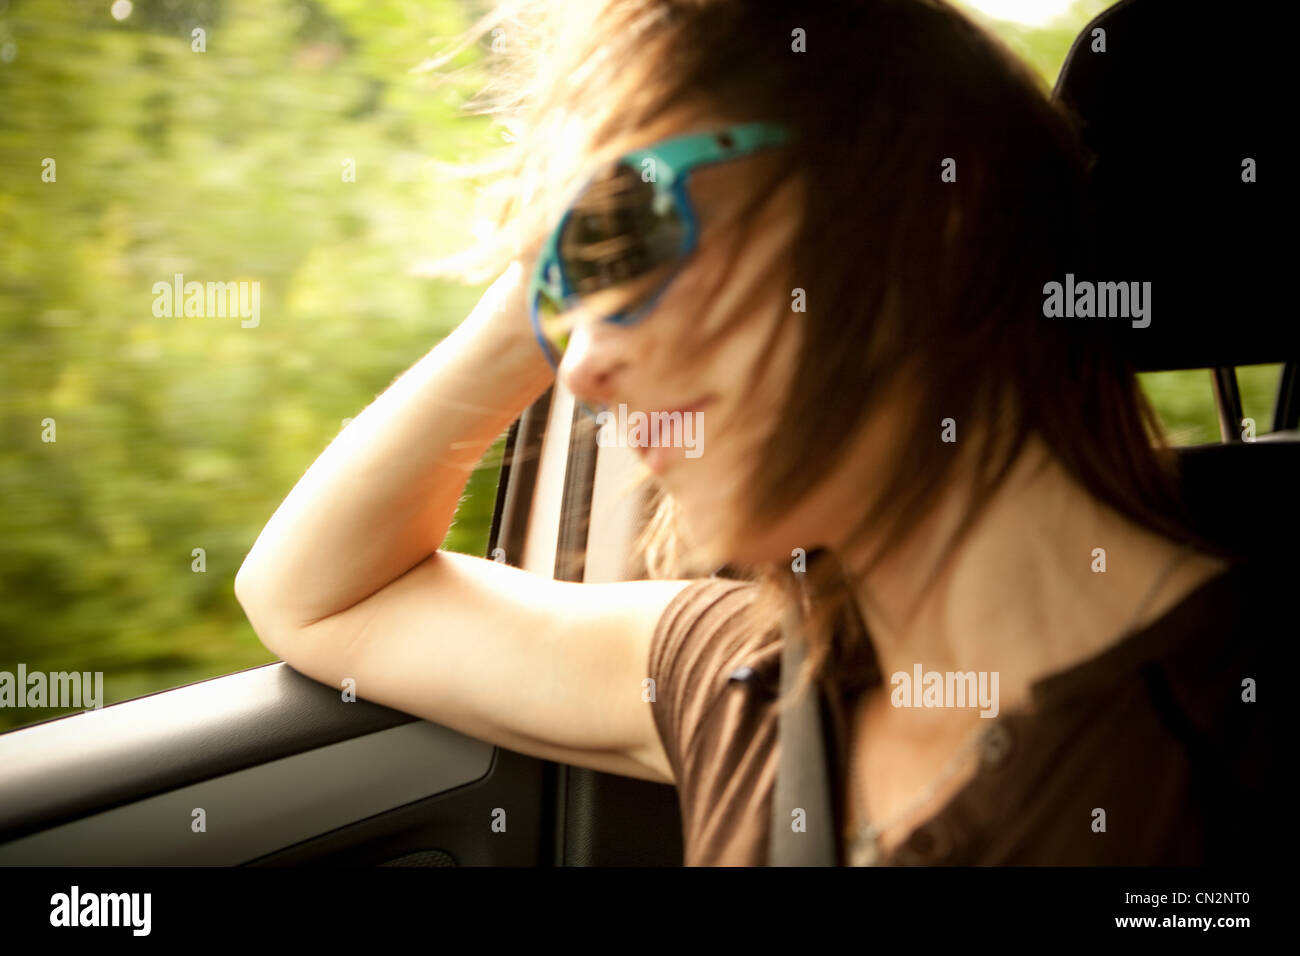 Female passenger in car with window open - Stock Image